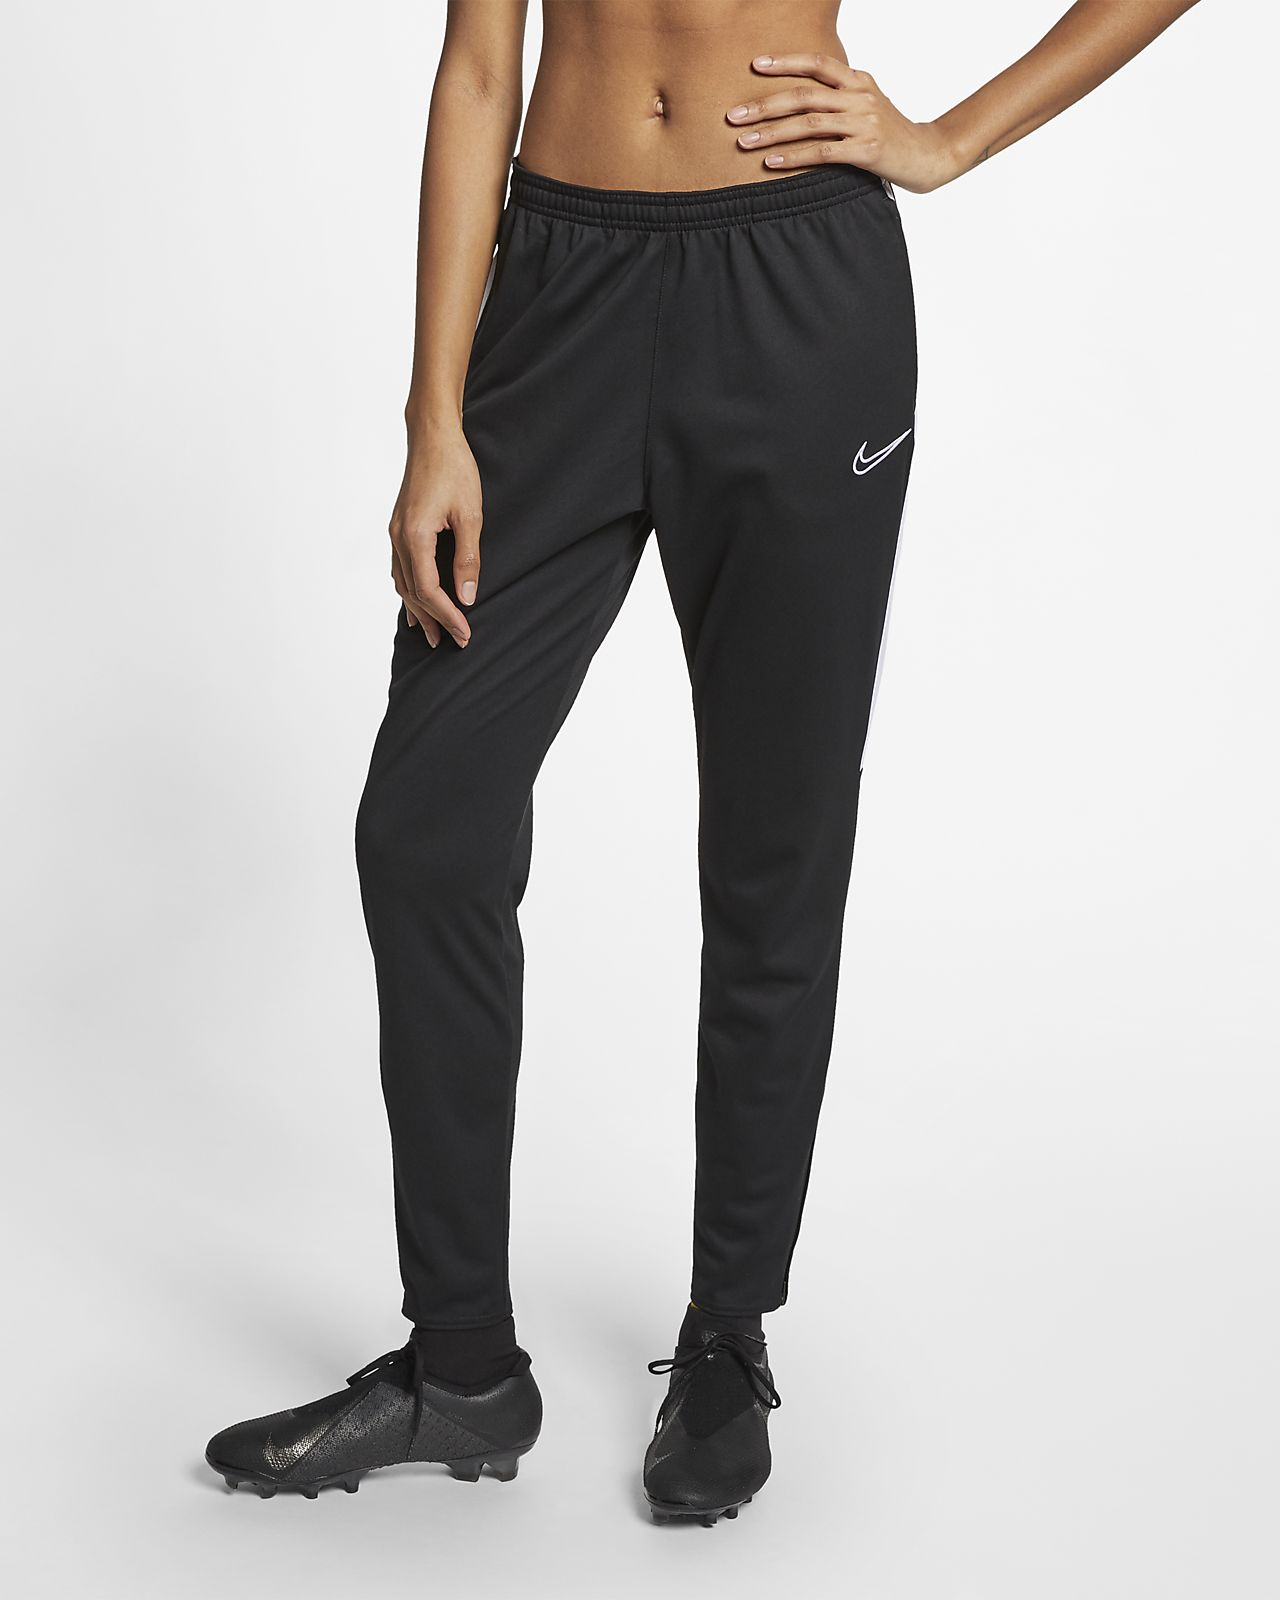 latest discount good quality footwear Nike Dri-FIT Academy Women's Football Pants